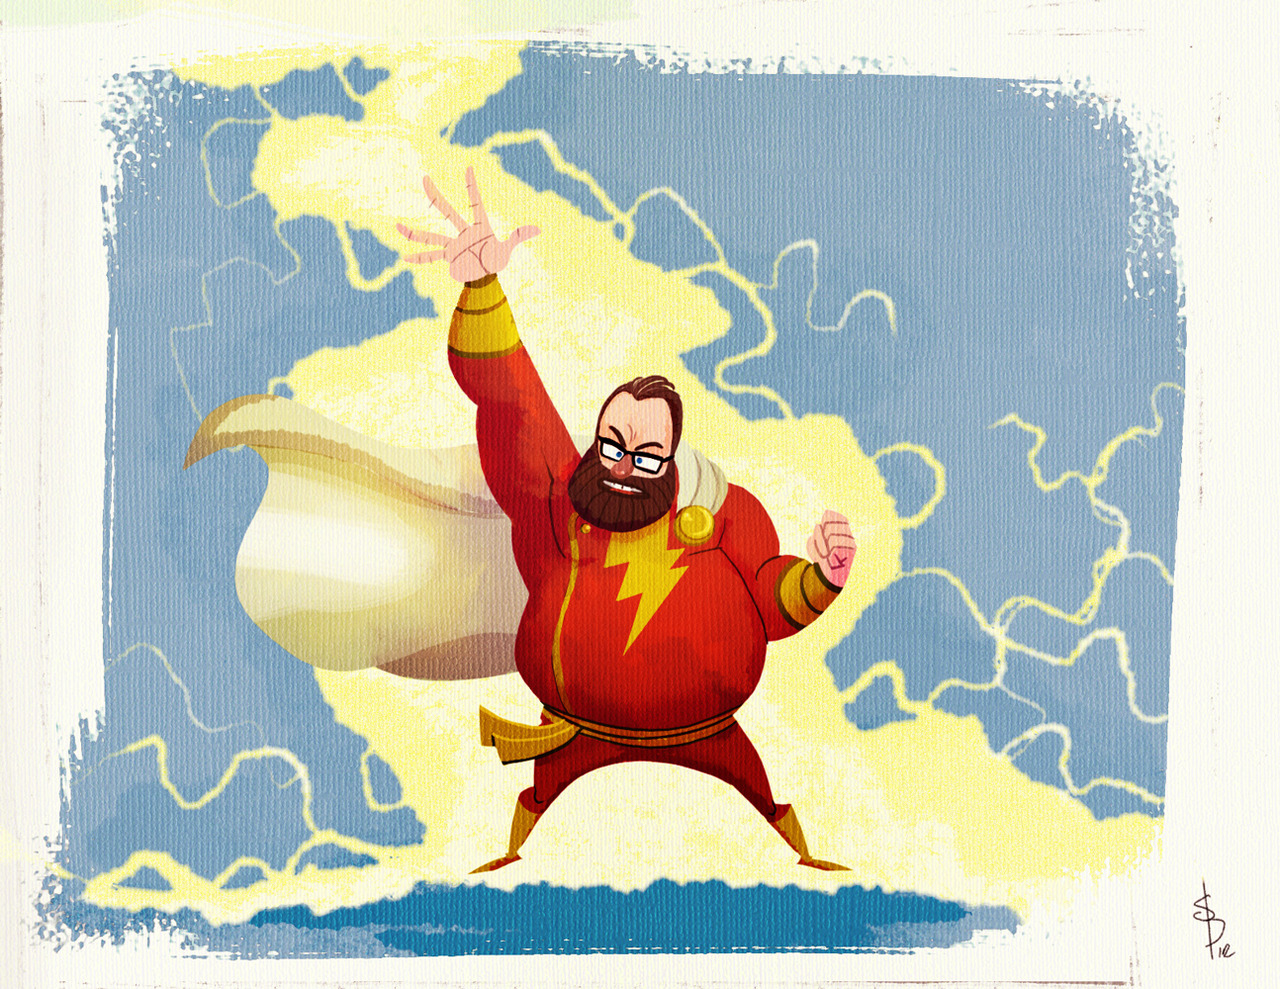 Day 9- You as a superhero- SHAZAM! I get superpowers but my eyesight still stinks go figure:)    http://  4pm-draw-club.tumblr.com/  post/26639983610/  the-daily-drawing-challenge  -part-3-holy-cow